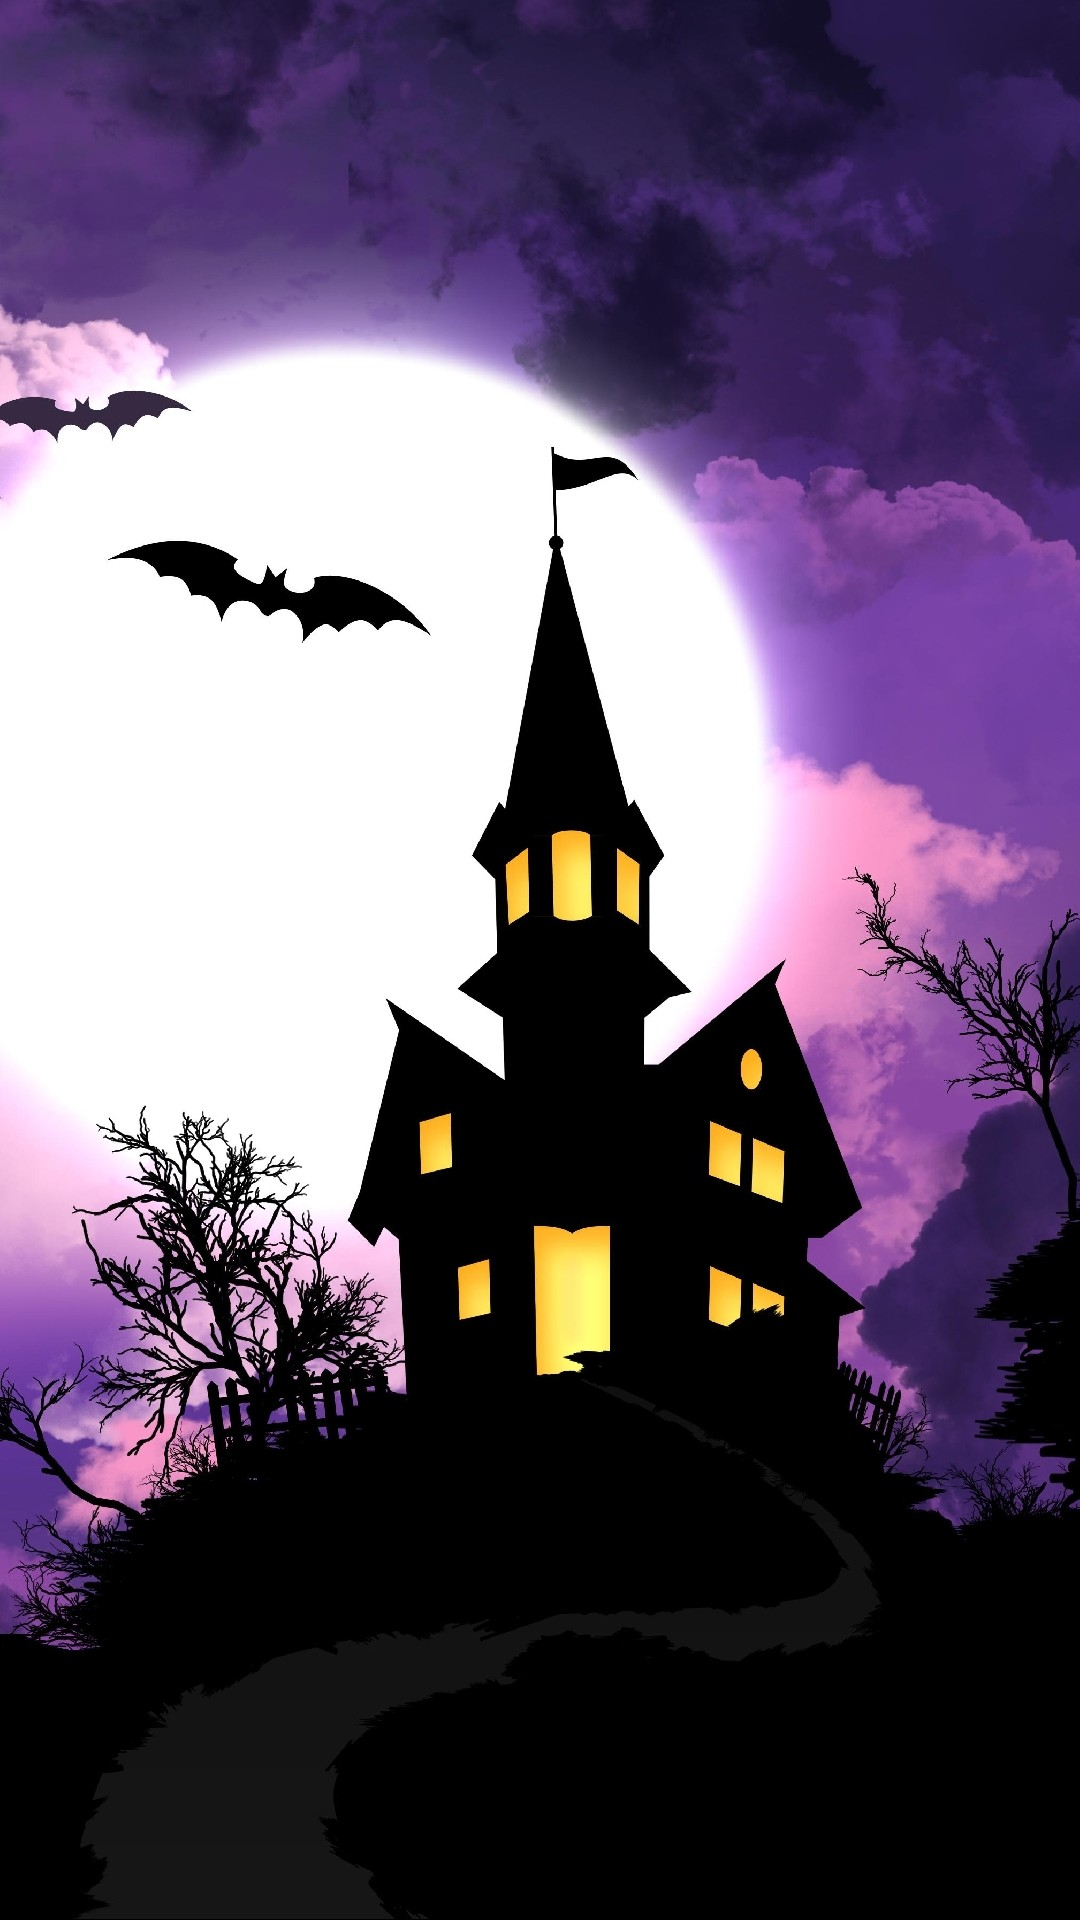 Iphone wallpaper Scary haunted house …